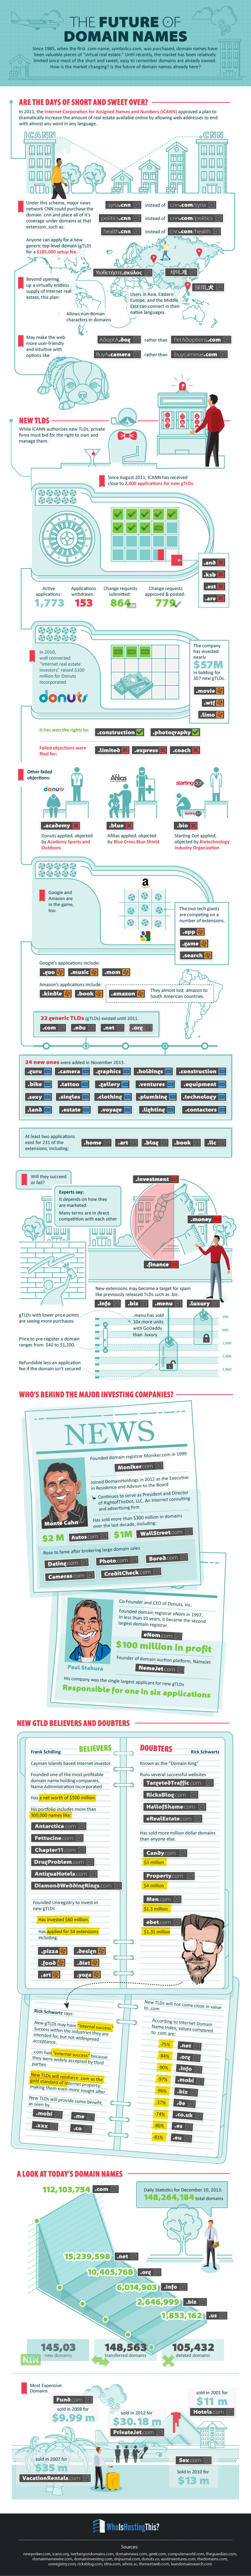 Infographic: The Future of Domain Names